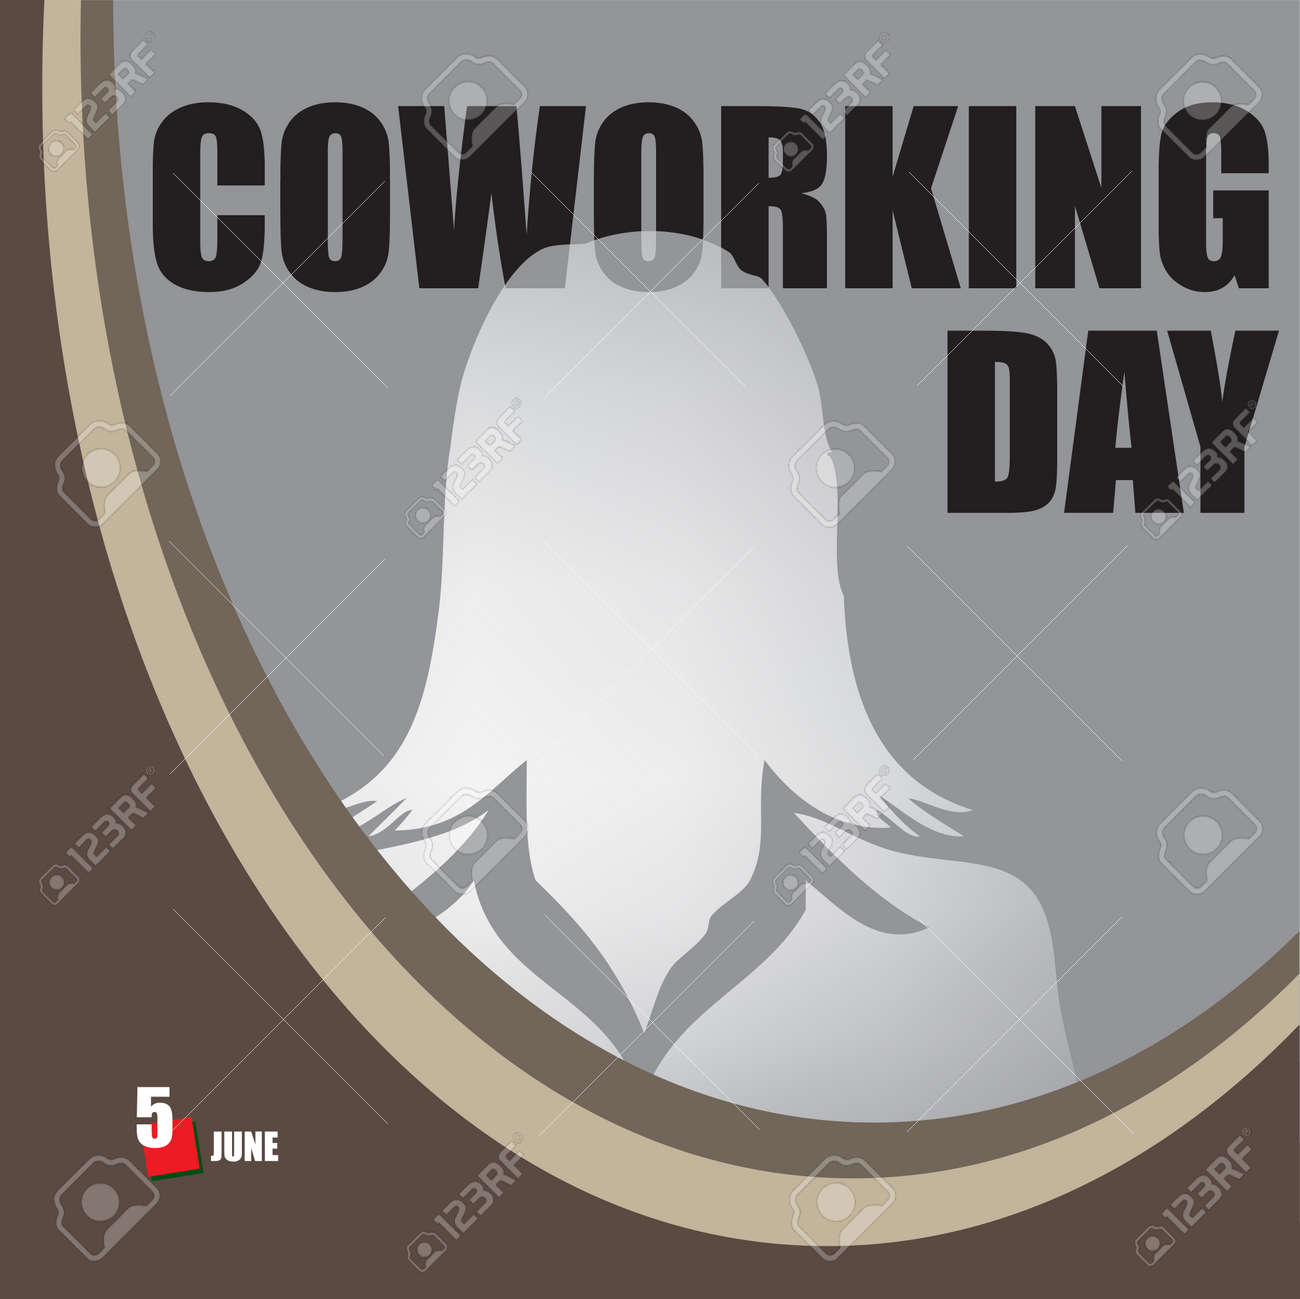 A festive event celebrated in june - Coworking Day - 169730056